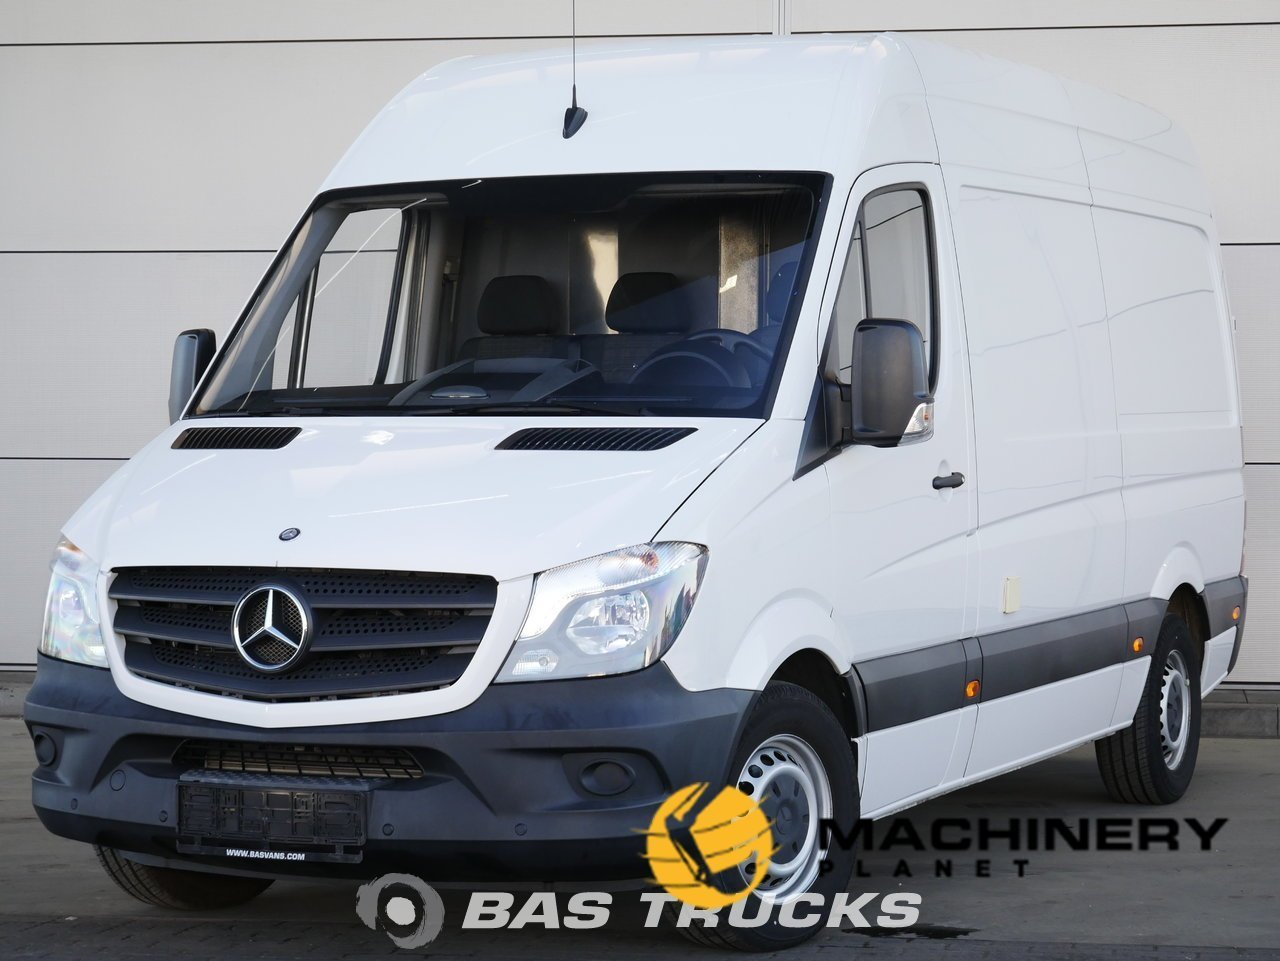 Used-Light-commercial-vehicle-Mercedes-Sprinter-2015_146917_1-1554202726317_5ca340664d5b6-1.jpg